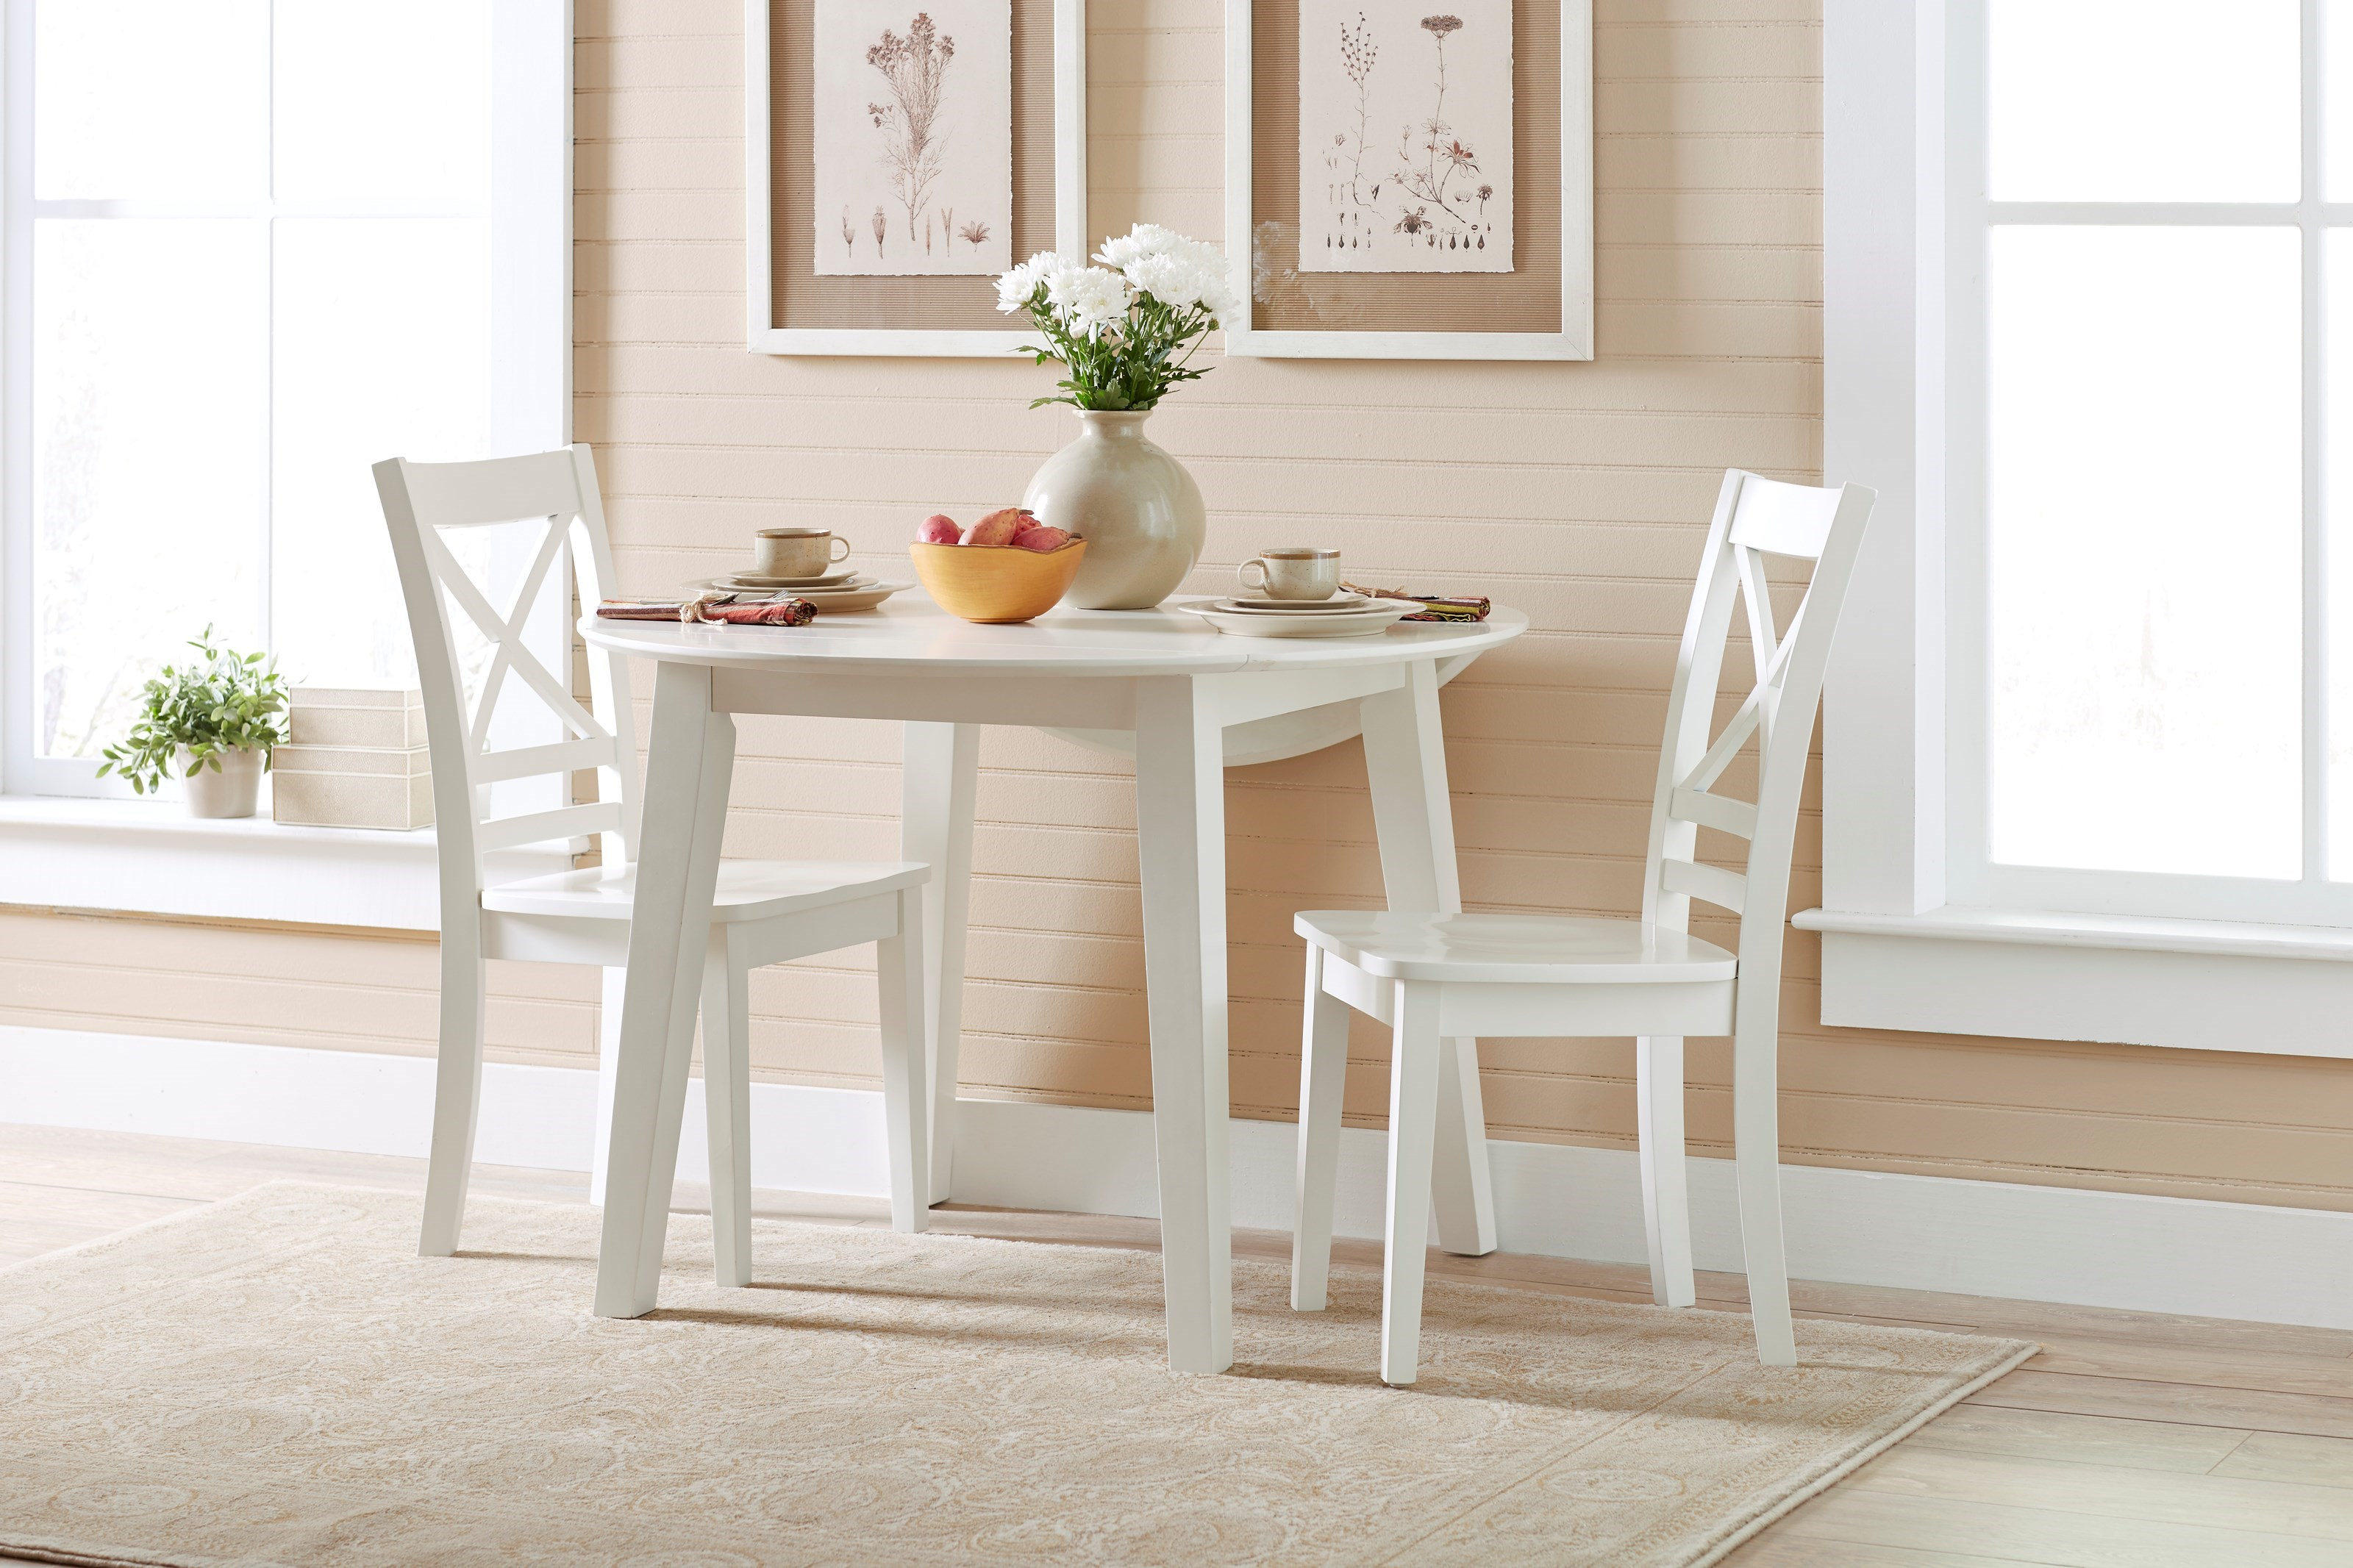 Red Knot Furniture Hawaii